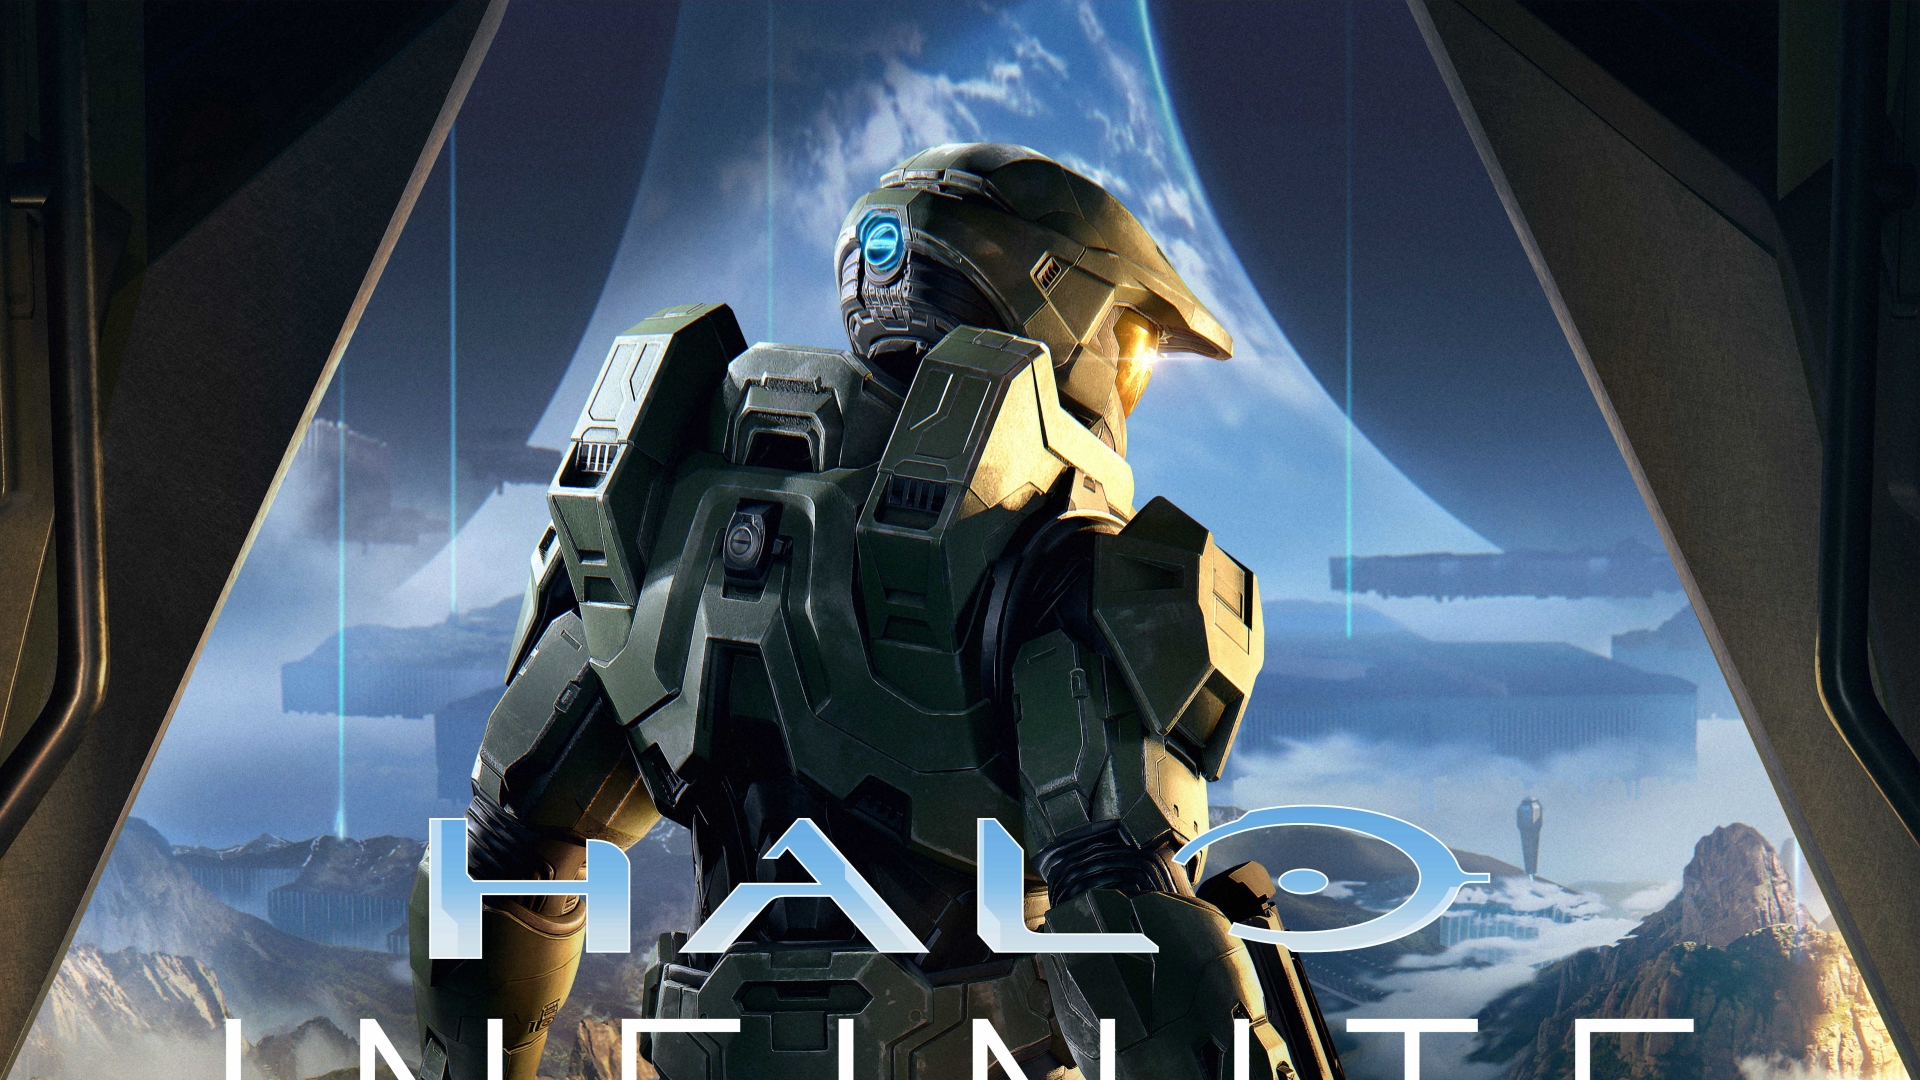 1920x1080 Halo Infinite 2019 1080p Laptop Full Hd Wallpaper Hd